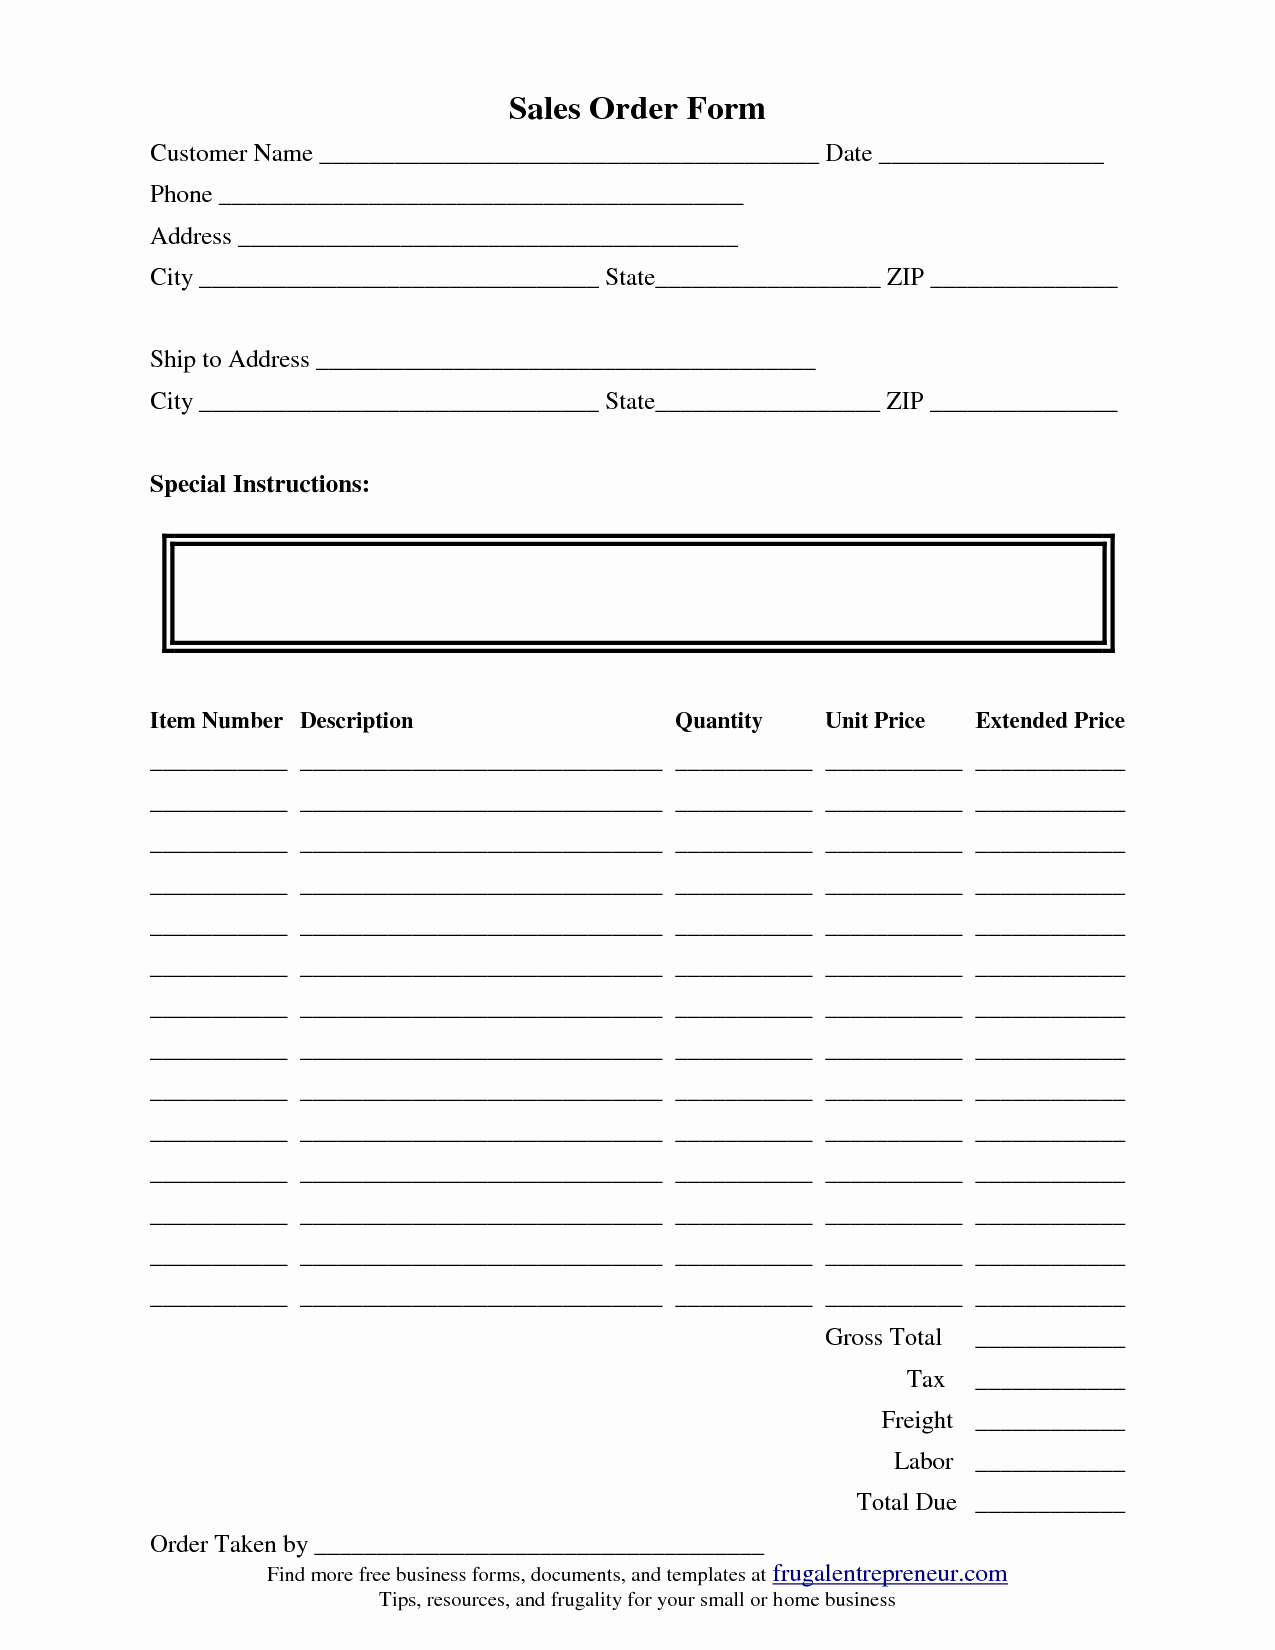 Custom order form Template Lovely order form Template